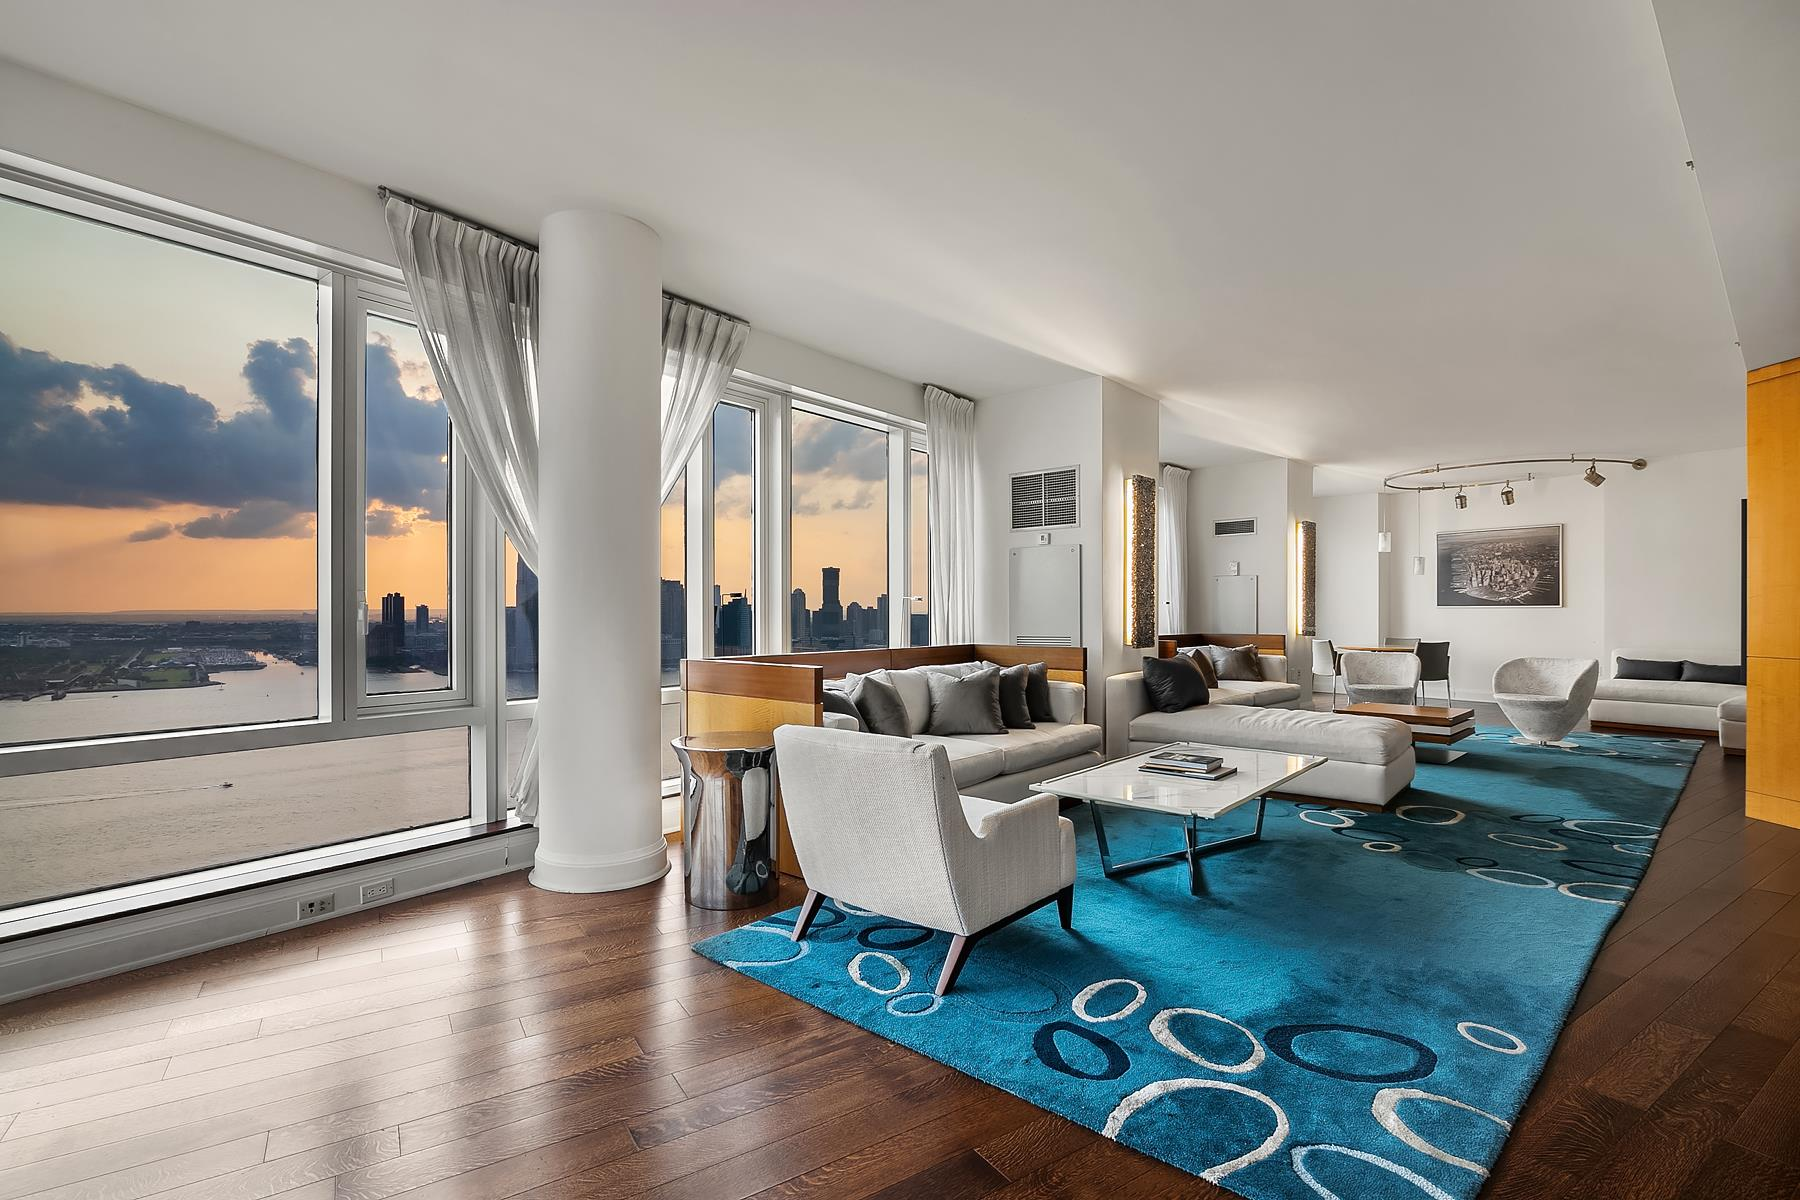 ICONIC STATUE OF LIBERTY & NEW YORK HARBOR VIEWS   THE VISIONAIRETHE RESIDENCEThis one-of-a-kind 3,418 SF sprawling residence is a unique combination of 70 Little West Street's most coveted high floor lines - D & E. This exquisitely finished apartment features a spacious dining room with direct Statue of Liberty views, walls of windows that ensure tons of natural light, hardwood floors, a generous closet space, and an in-unit washer and dryer. Currently, the apartment is configured as a 4 Bedroom 4.5 Bathroom unit with ample living space and a media room, and it can be easily converted into a 6 Bedroom residence.When you enter the apartment, you will be greeted by magic vistas of New York City Harbor and Hudson River! The oversized living and dining rooms are made for family and friends gatherings and dinners. Beautifully designed kitchen is outfitted with top-of-the-line appliances. The apartment is lit with natural light throughout the day with South, East, and West exposures. The residence has four spacious bedrooms, including the master bedroom with custom-made closets. In addition, the master suite offers a large en-suite bathroom that includes a walk-in shower, a deep soaking tub, and a double-sink vanity.THE BUILDINGDesigned by the world-renowned architects Pelli Clarke Pelli, The Visionaire at 70 Little West Street is the first high-rise residential building on the East Coast to receive LEED Platinum certification. State-of-the-art building's amenities include a sky-lit indoor pool, sauna, steam room, jacuzzi, a social lounge with TV and fireplace, children's playroom, fitness center, parking garage, and 24/7 concierge service. In addition, the landscaped terrace features gas grills, cabanas, and endless Hudson River views for comfort and relaxation. The Visionaire is the full-service luxury condominium where sustainable architecture meets art offering its residents a clean and healthy living environment with a high-efficiency air-filtration system, a centra